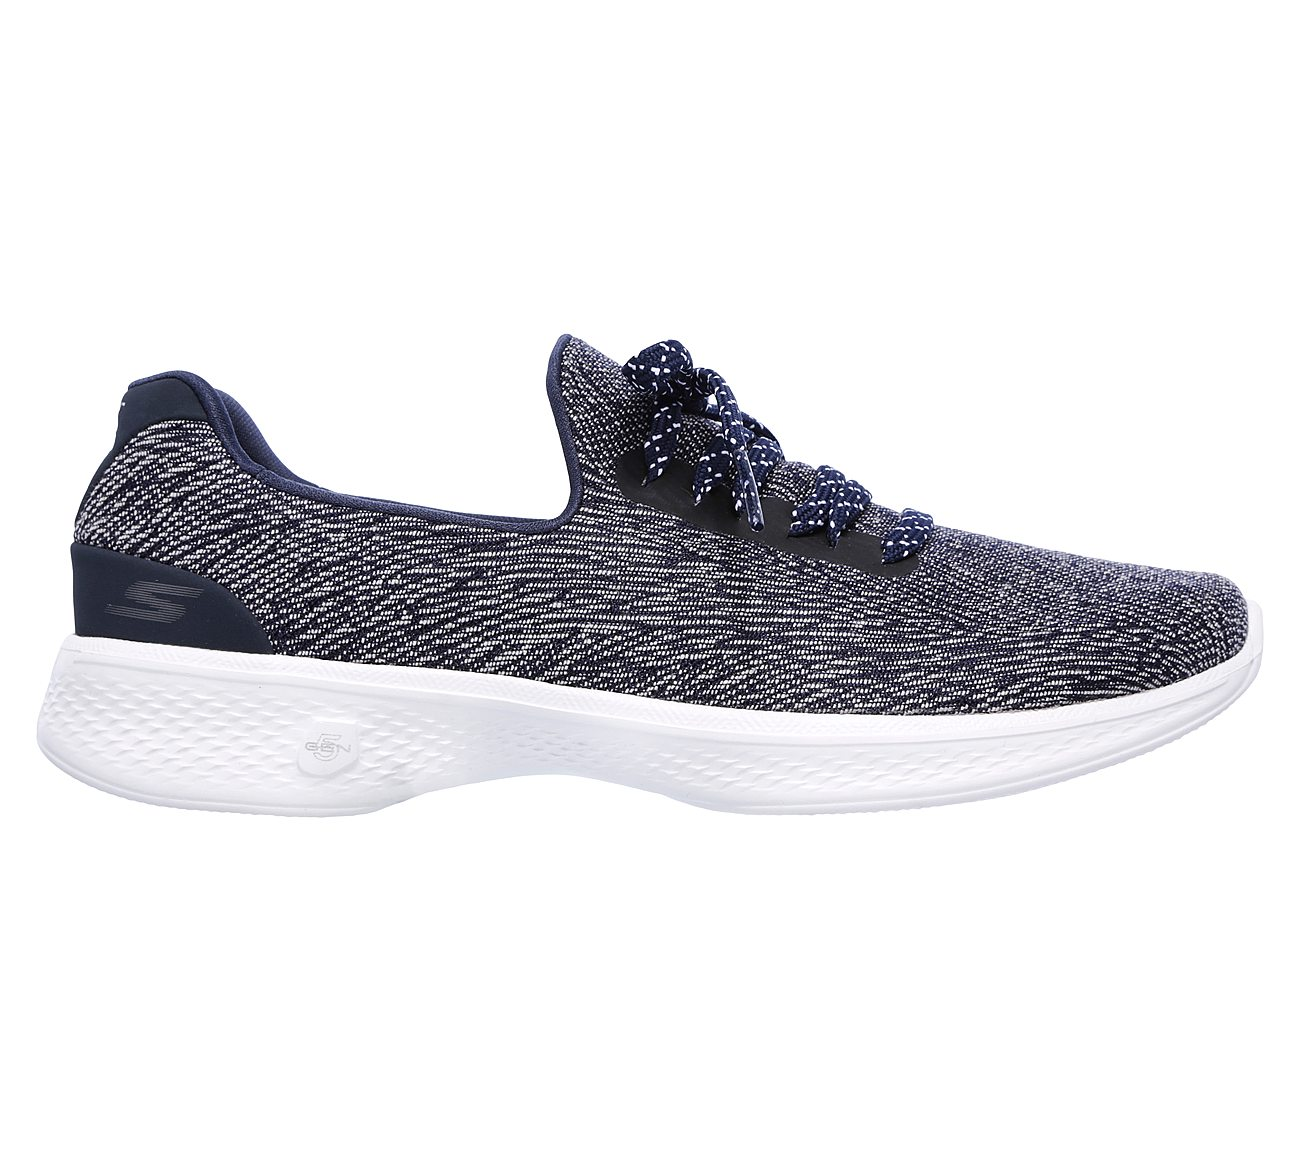 All Day Comfort Skechers Performance Shoes